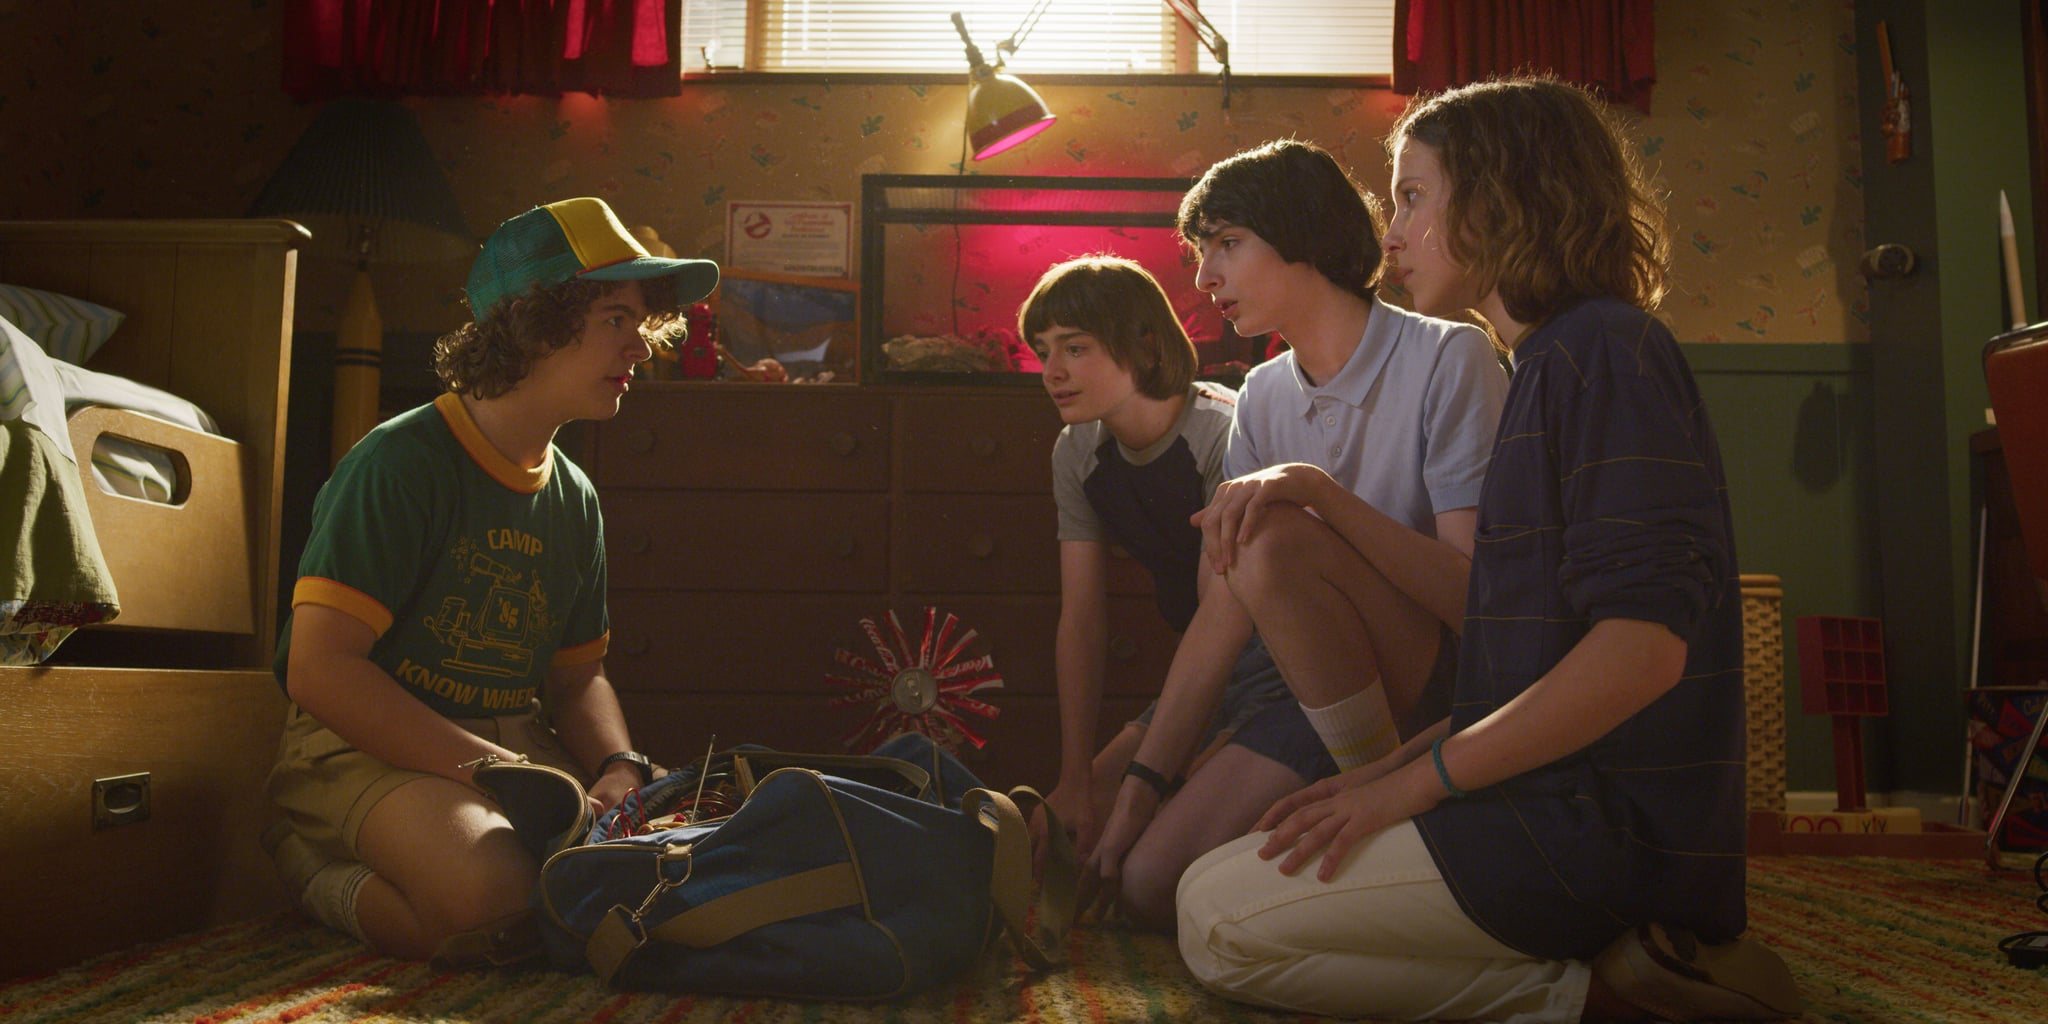 STRANGER THINGS, from left: Gaten Matarazzo, Noah Schnapp, Finn Wolfhard, Millie Bobby Brown, (Season 3, aired July 4, 2019), ph: Netflix / Courtesy Everett Collection